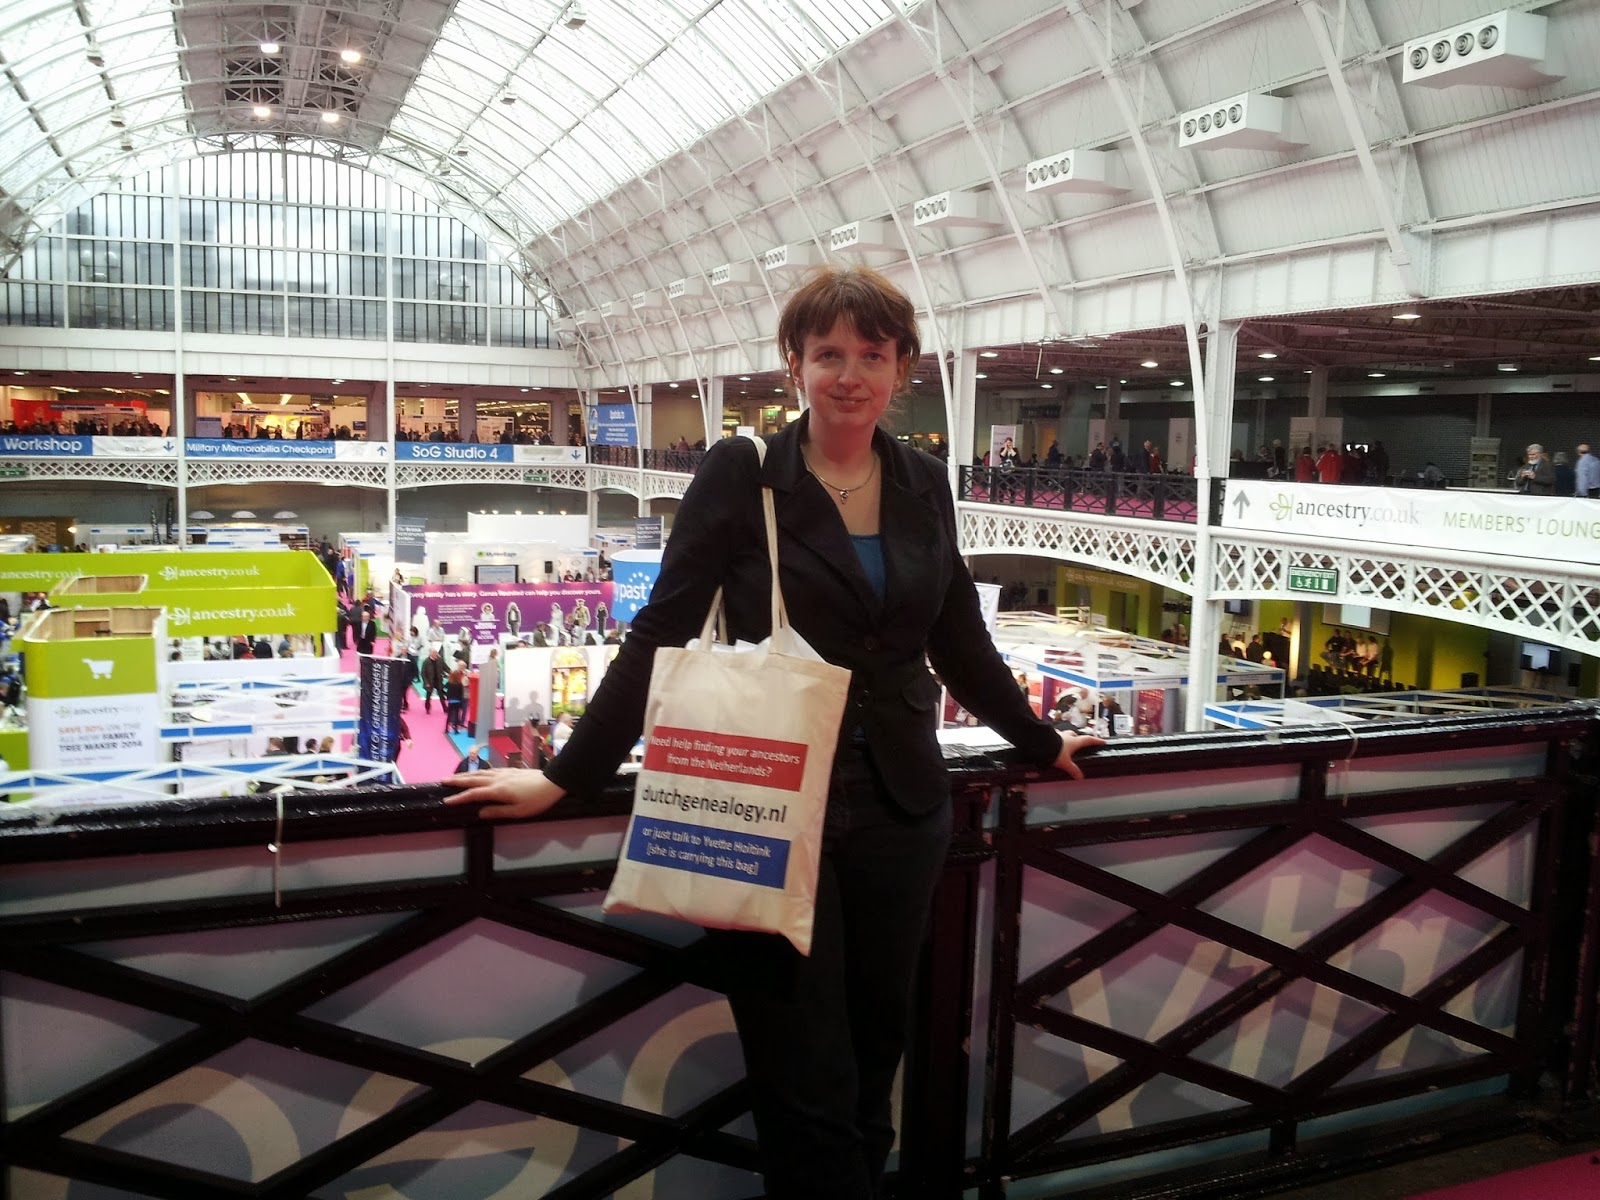 Yvette with a Dutchgenealogy.nl bag standing at the balcony at Who Do You Think You Are